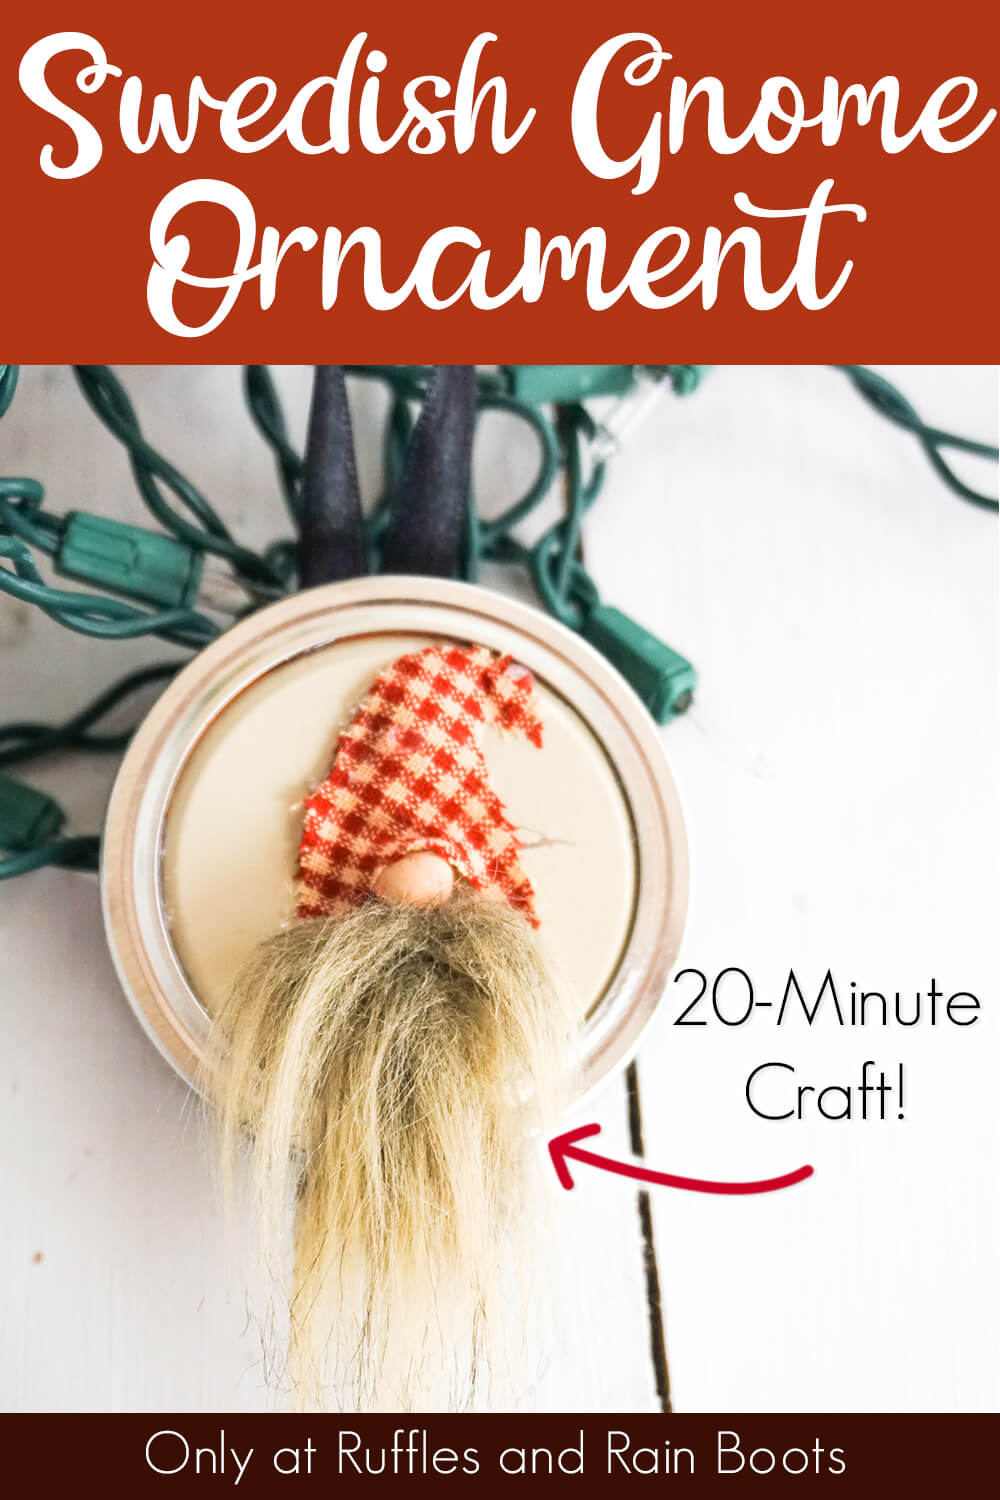 easy ornament made from a mason jar lid with a gnome face on it on a white table with christmas lights with text which reads swedish gnome ornament 20-minute craft